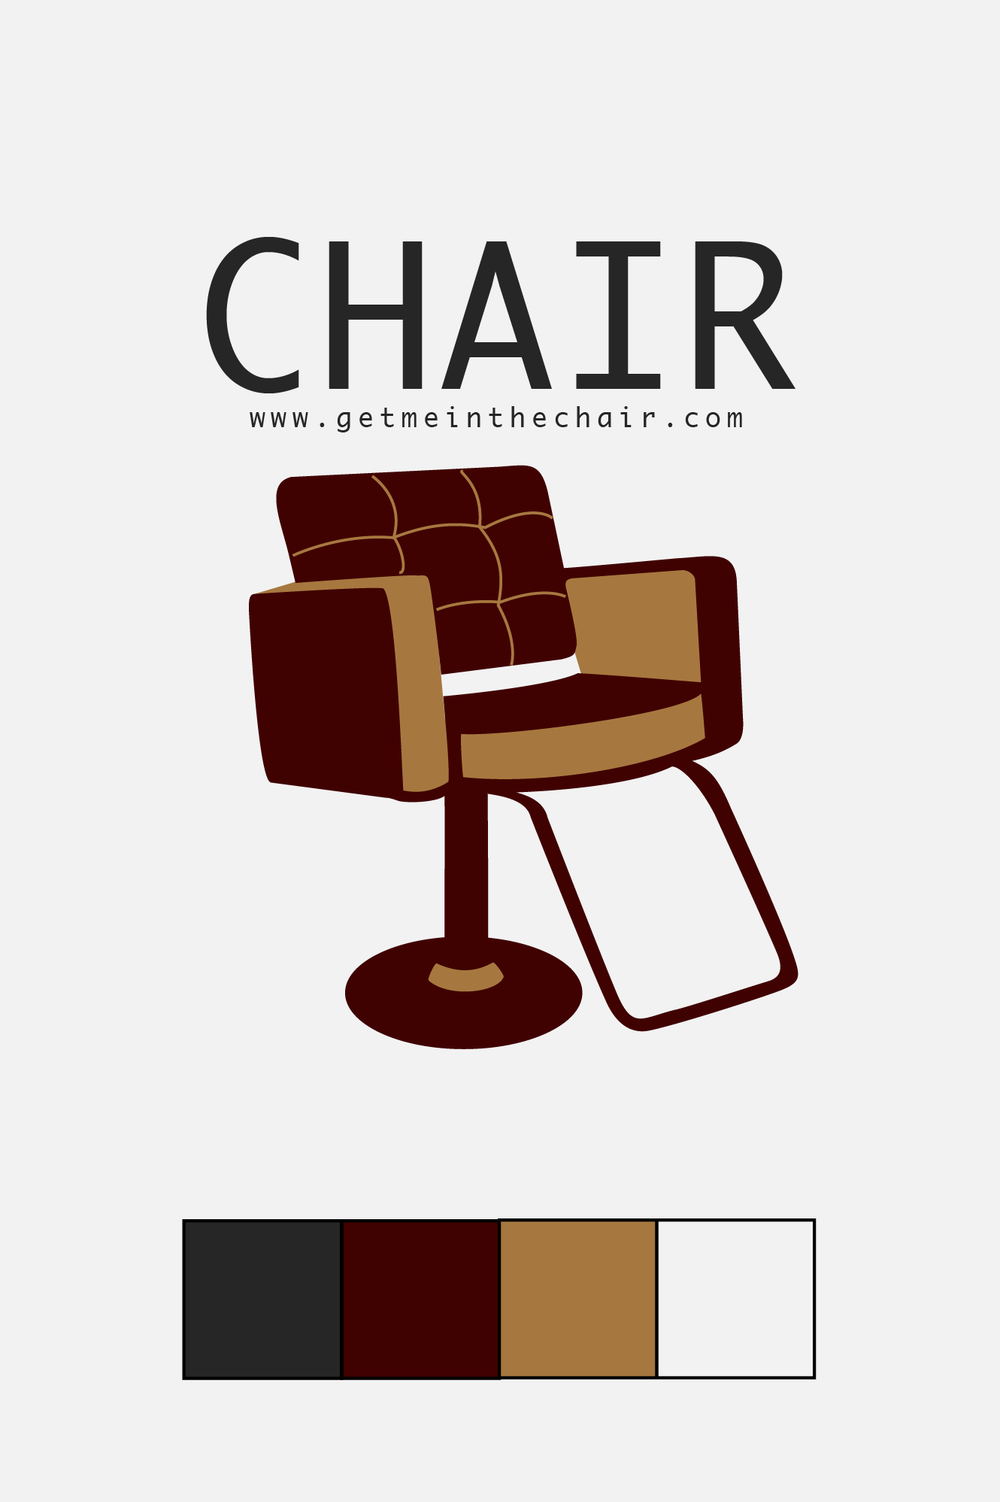 Chair_LOGO_6.png